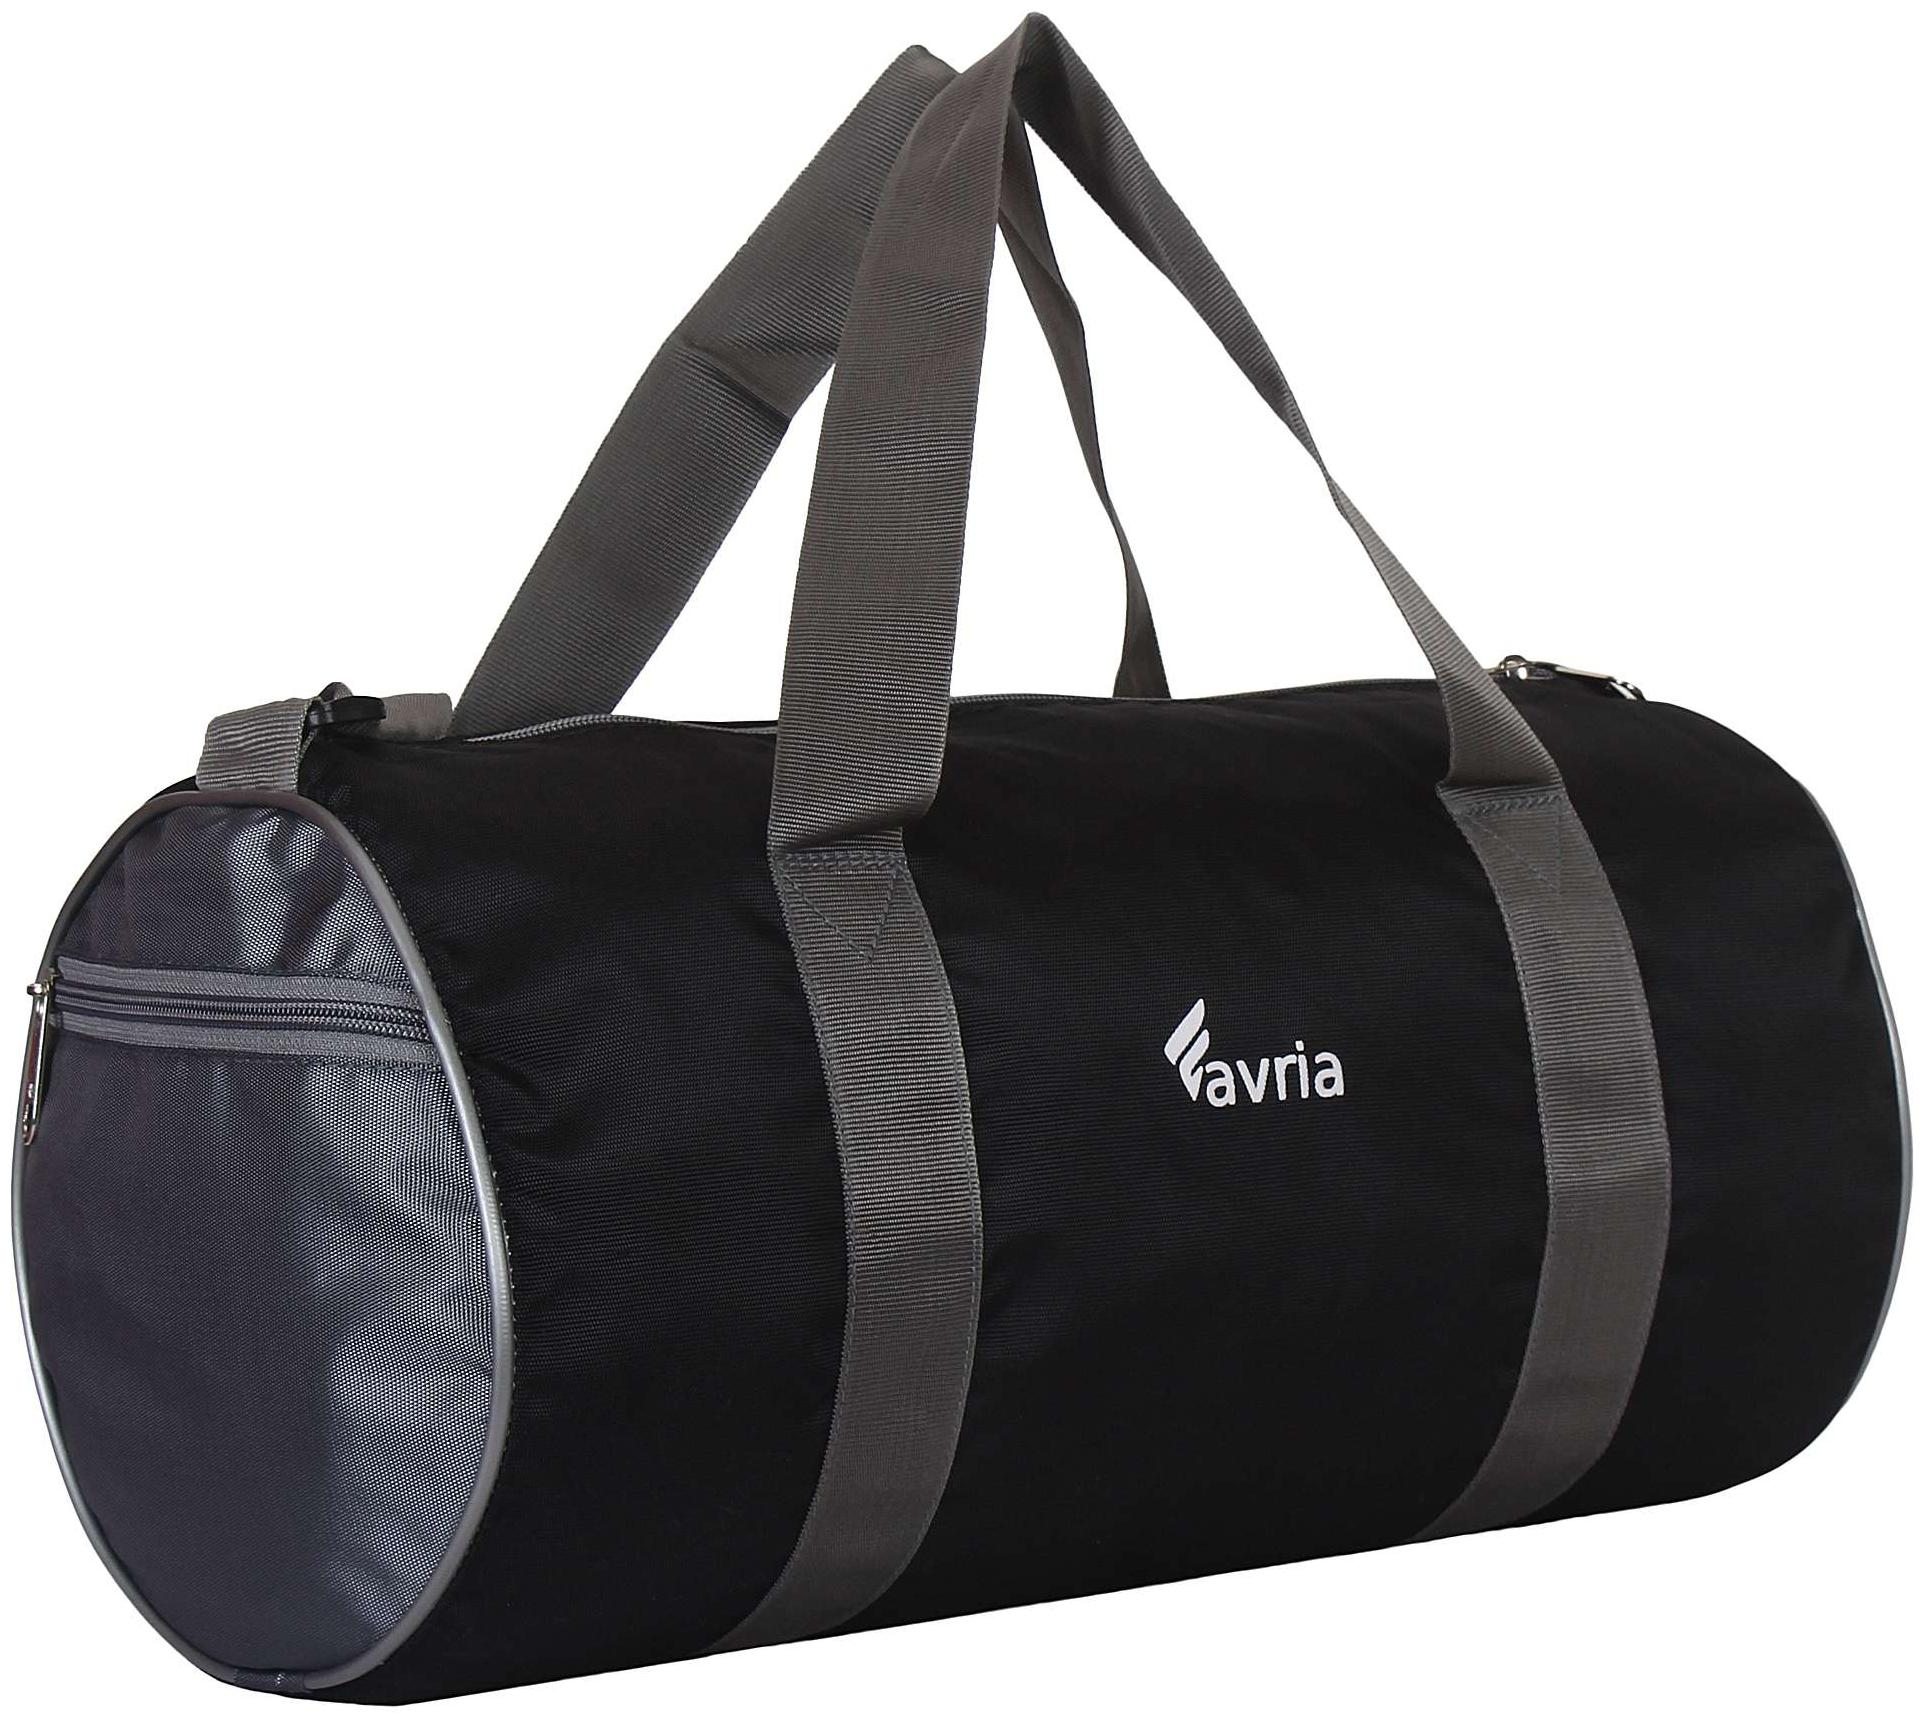 1a16f328ad4 Gym Duffle Bags Online - Buy Duffle Bags and Gym Bags for Men Online ...